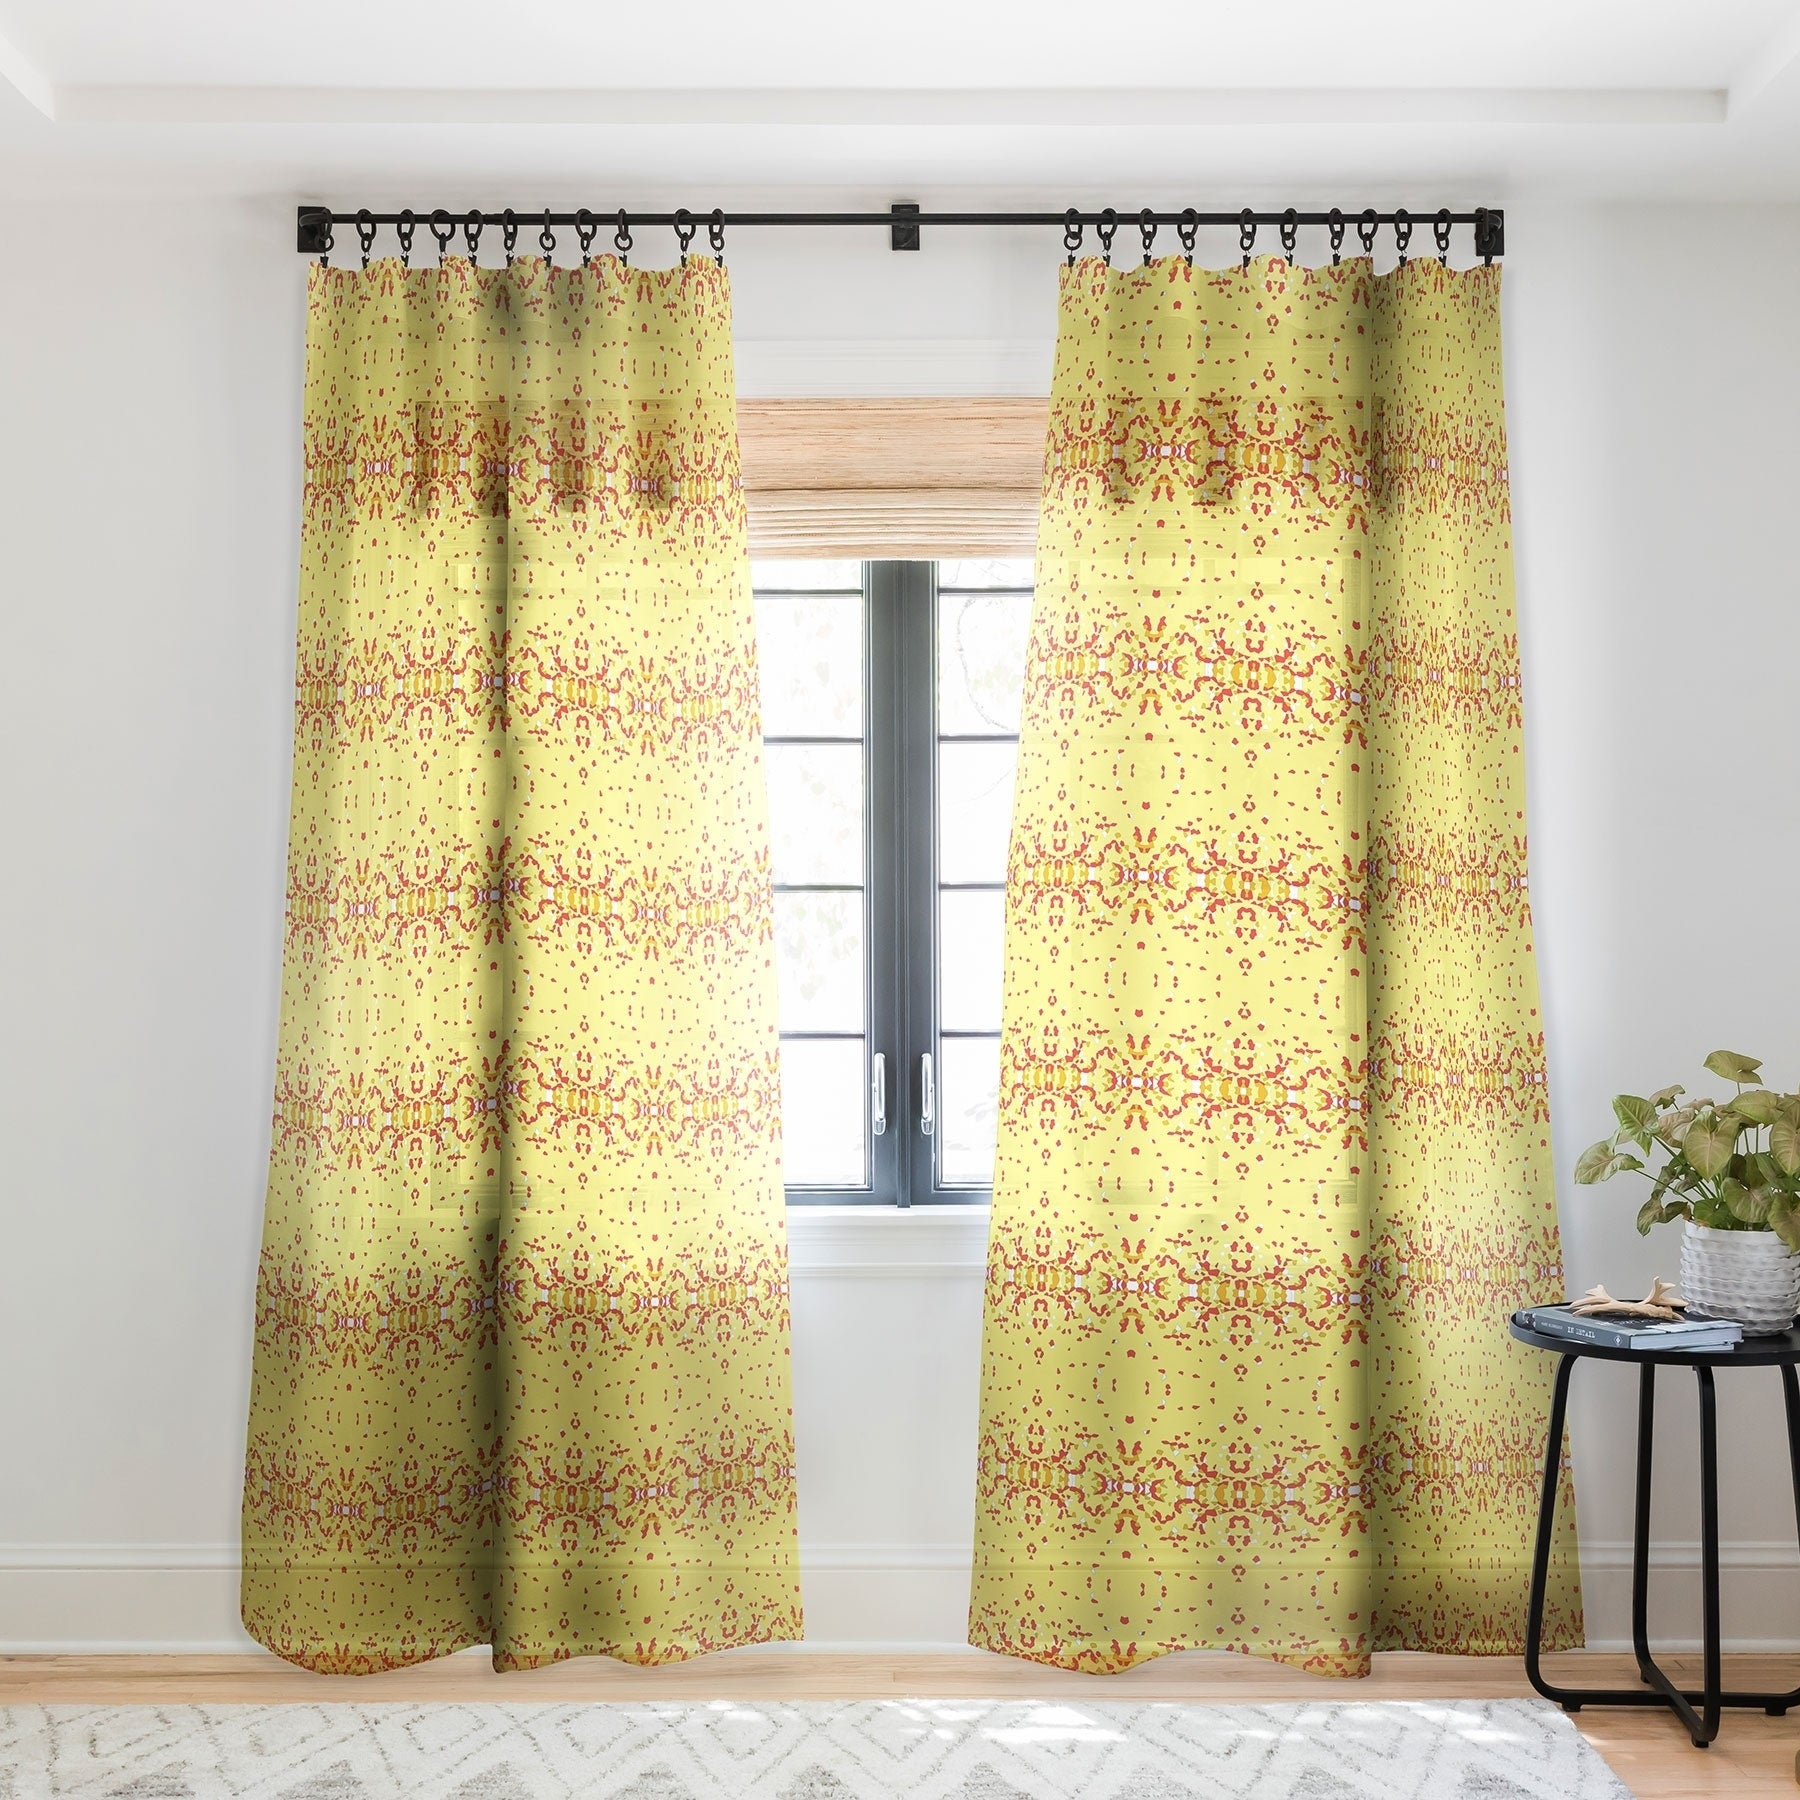 Rosie Brown Shredded Pieces Single Panel Sheer Curtain 50 X 84 On Sale Overstock 22043493